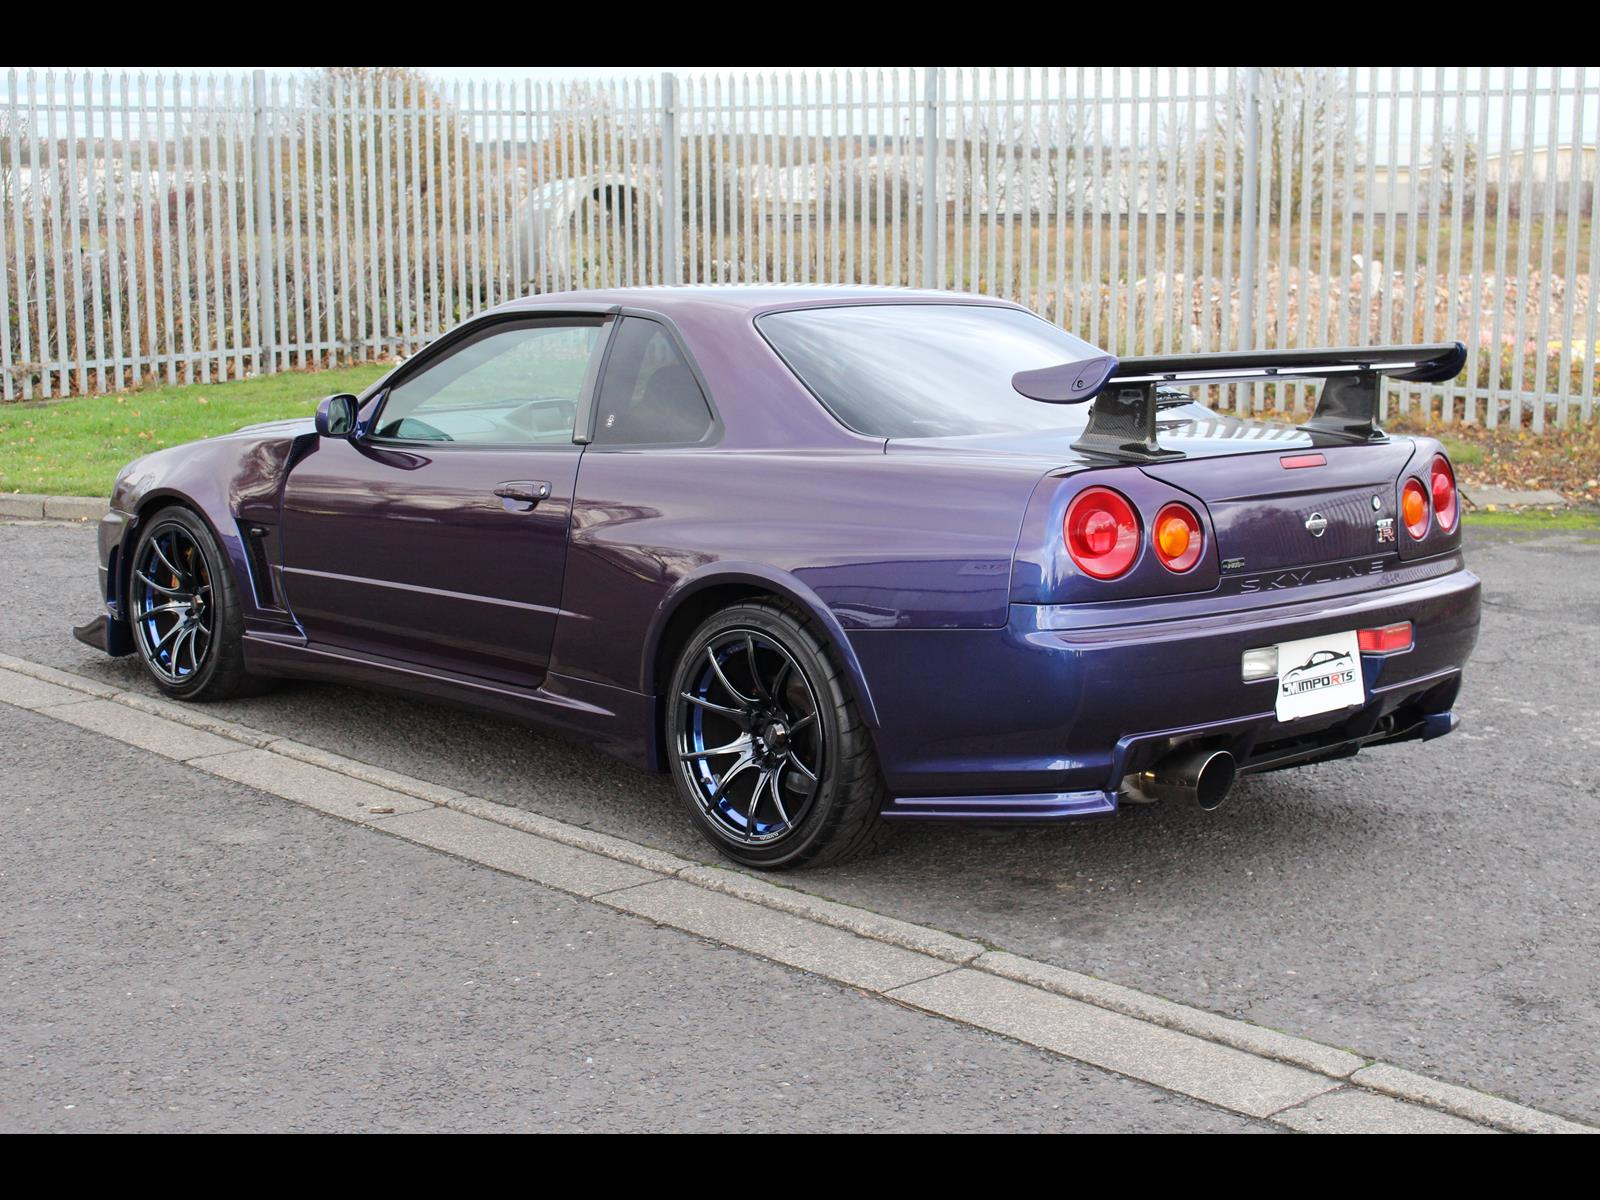 1999 Nissan Skyline Gtr R34 For Sale >> 1999 Nissan Skyline R34 GTR V-Spec 600PS 6 Speed MNP III ...